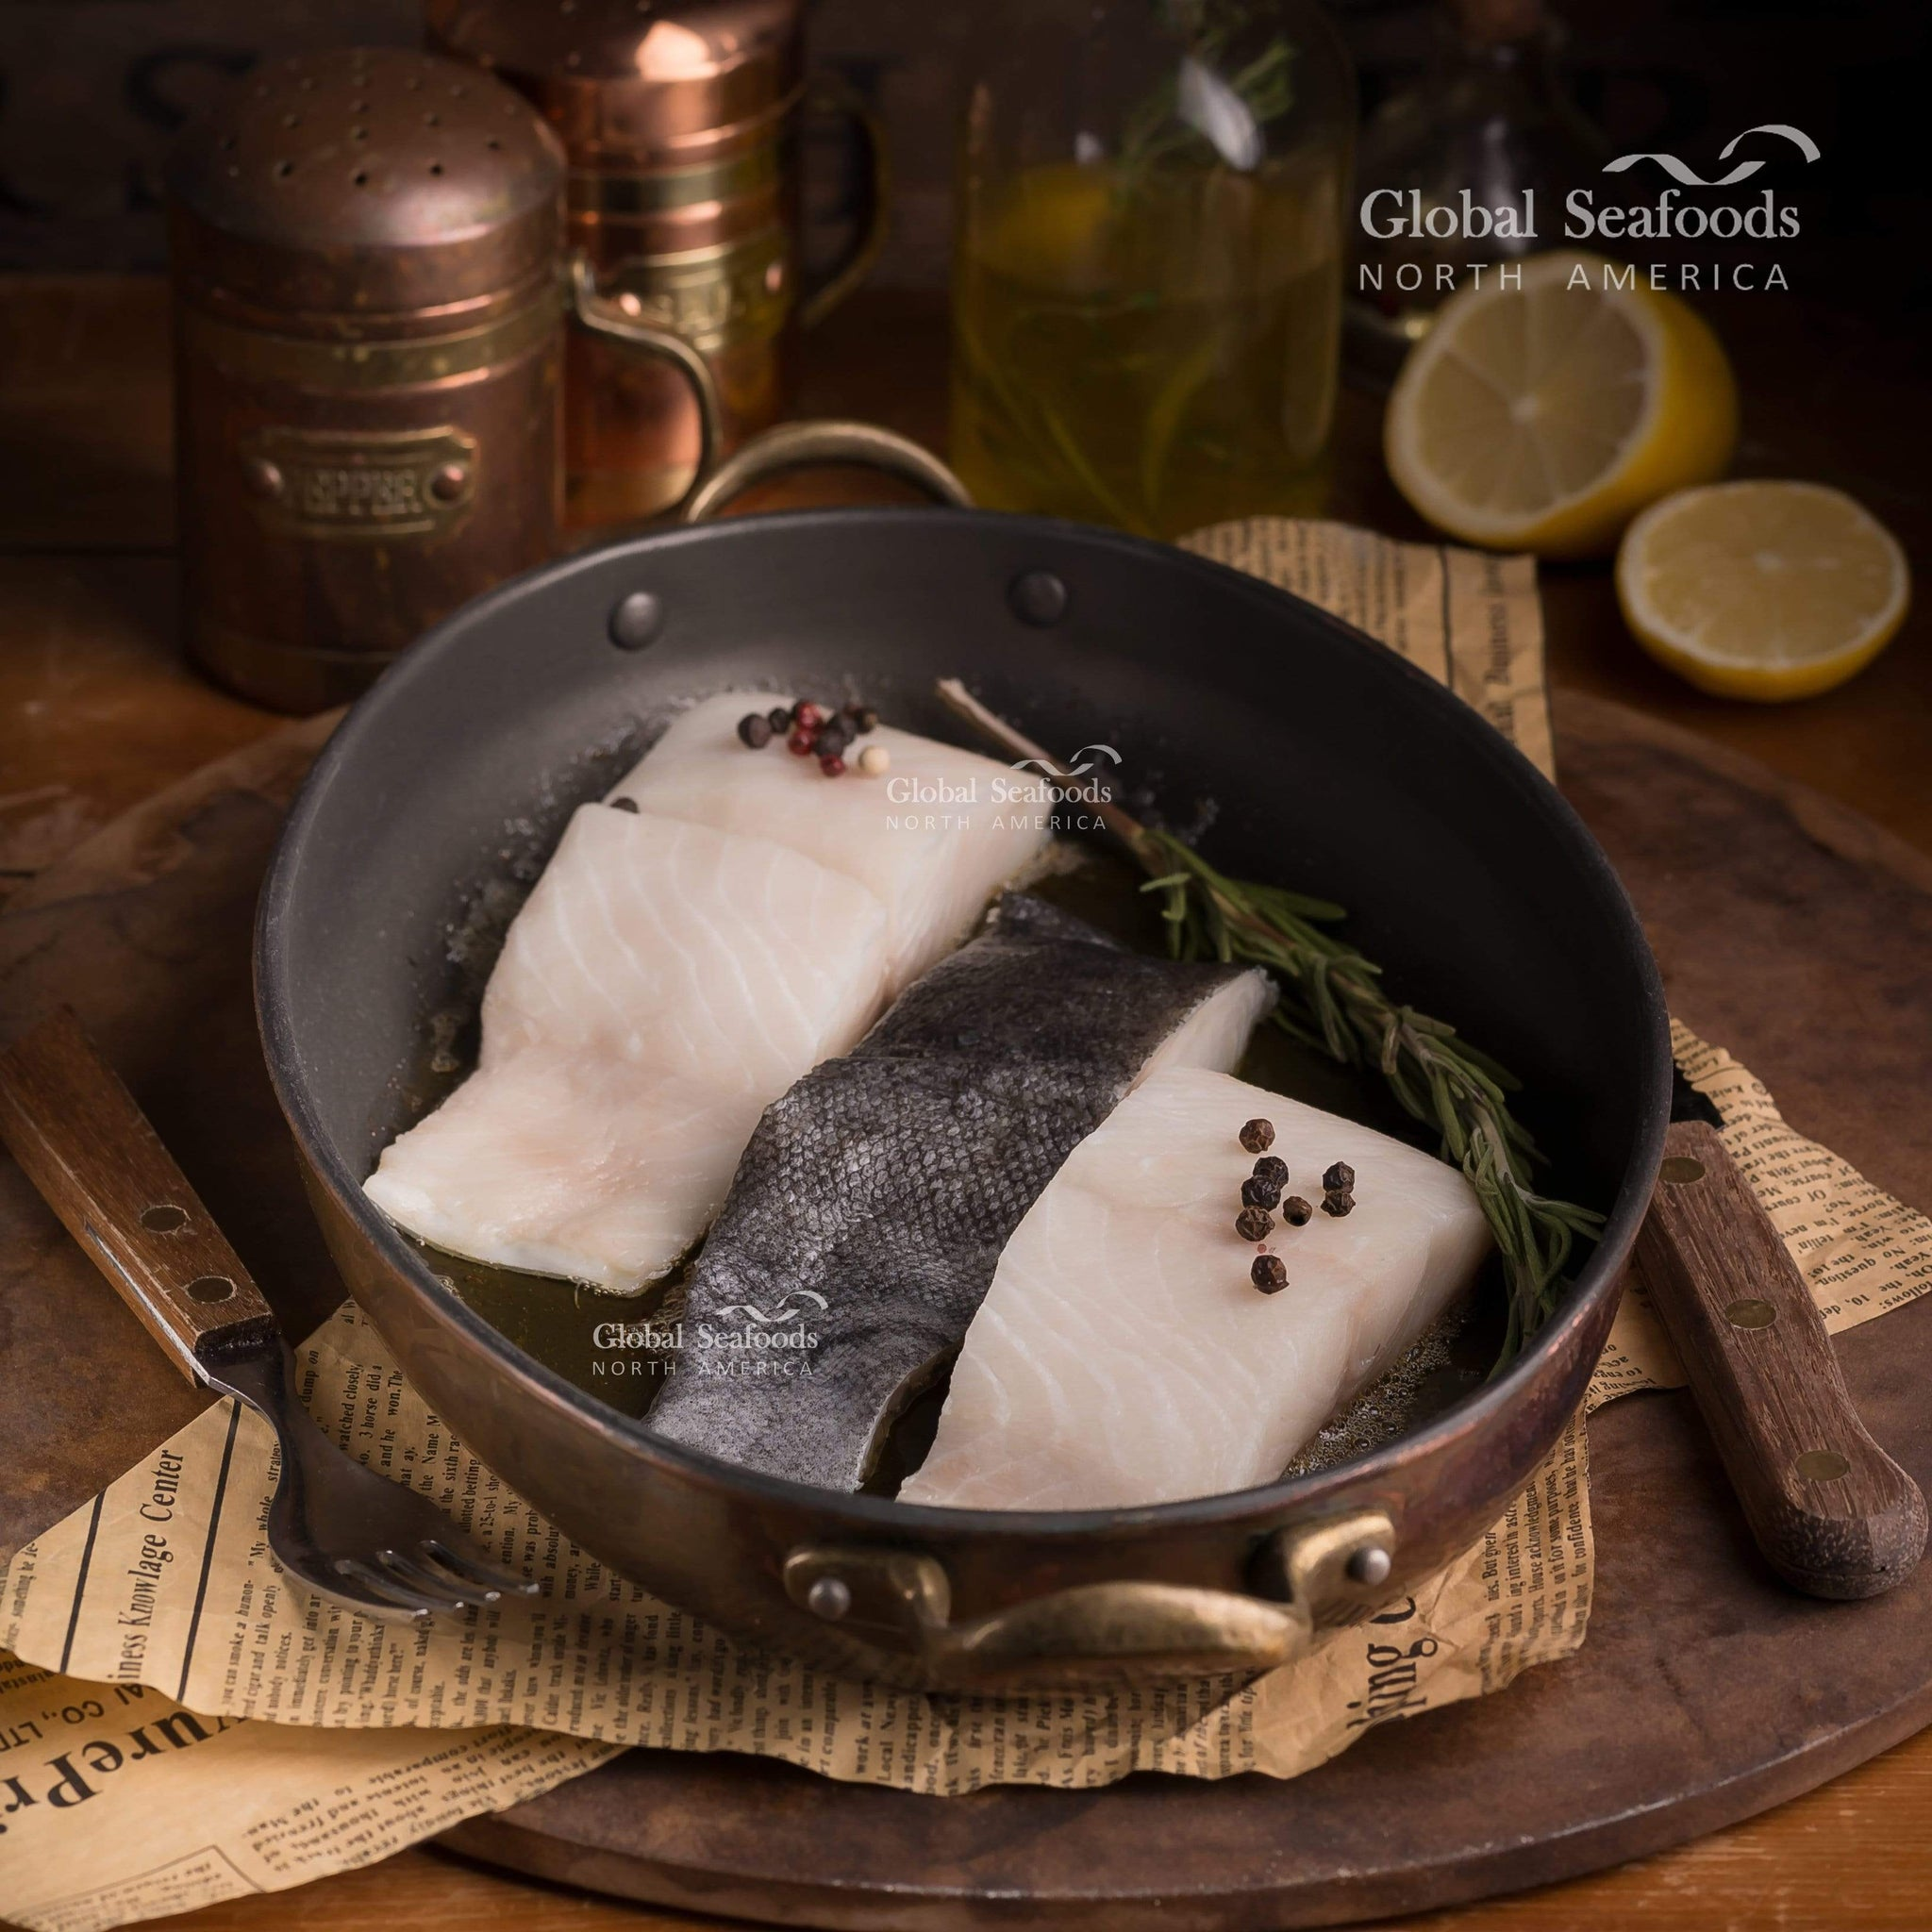 globalseafoods Fish Sablefish 6 Fillets Portions, 8 oz each Black Cod (Sablefish) Fillet Portions